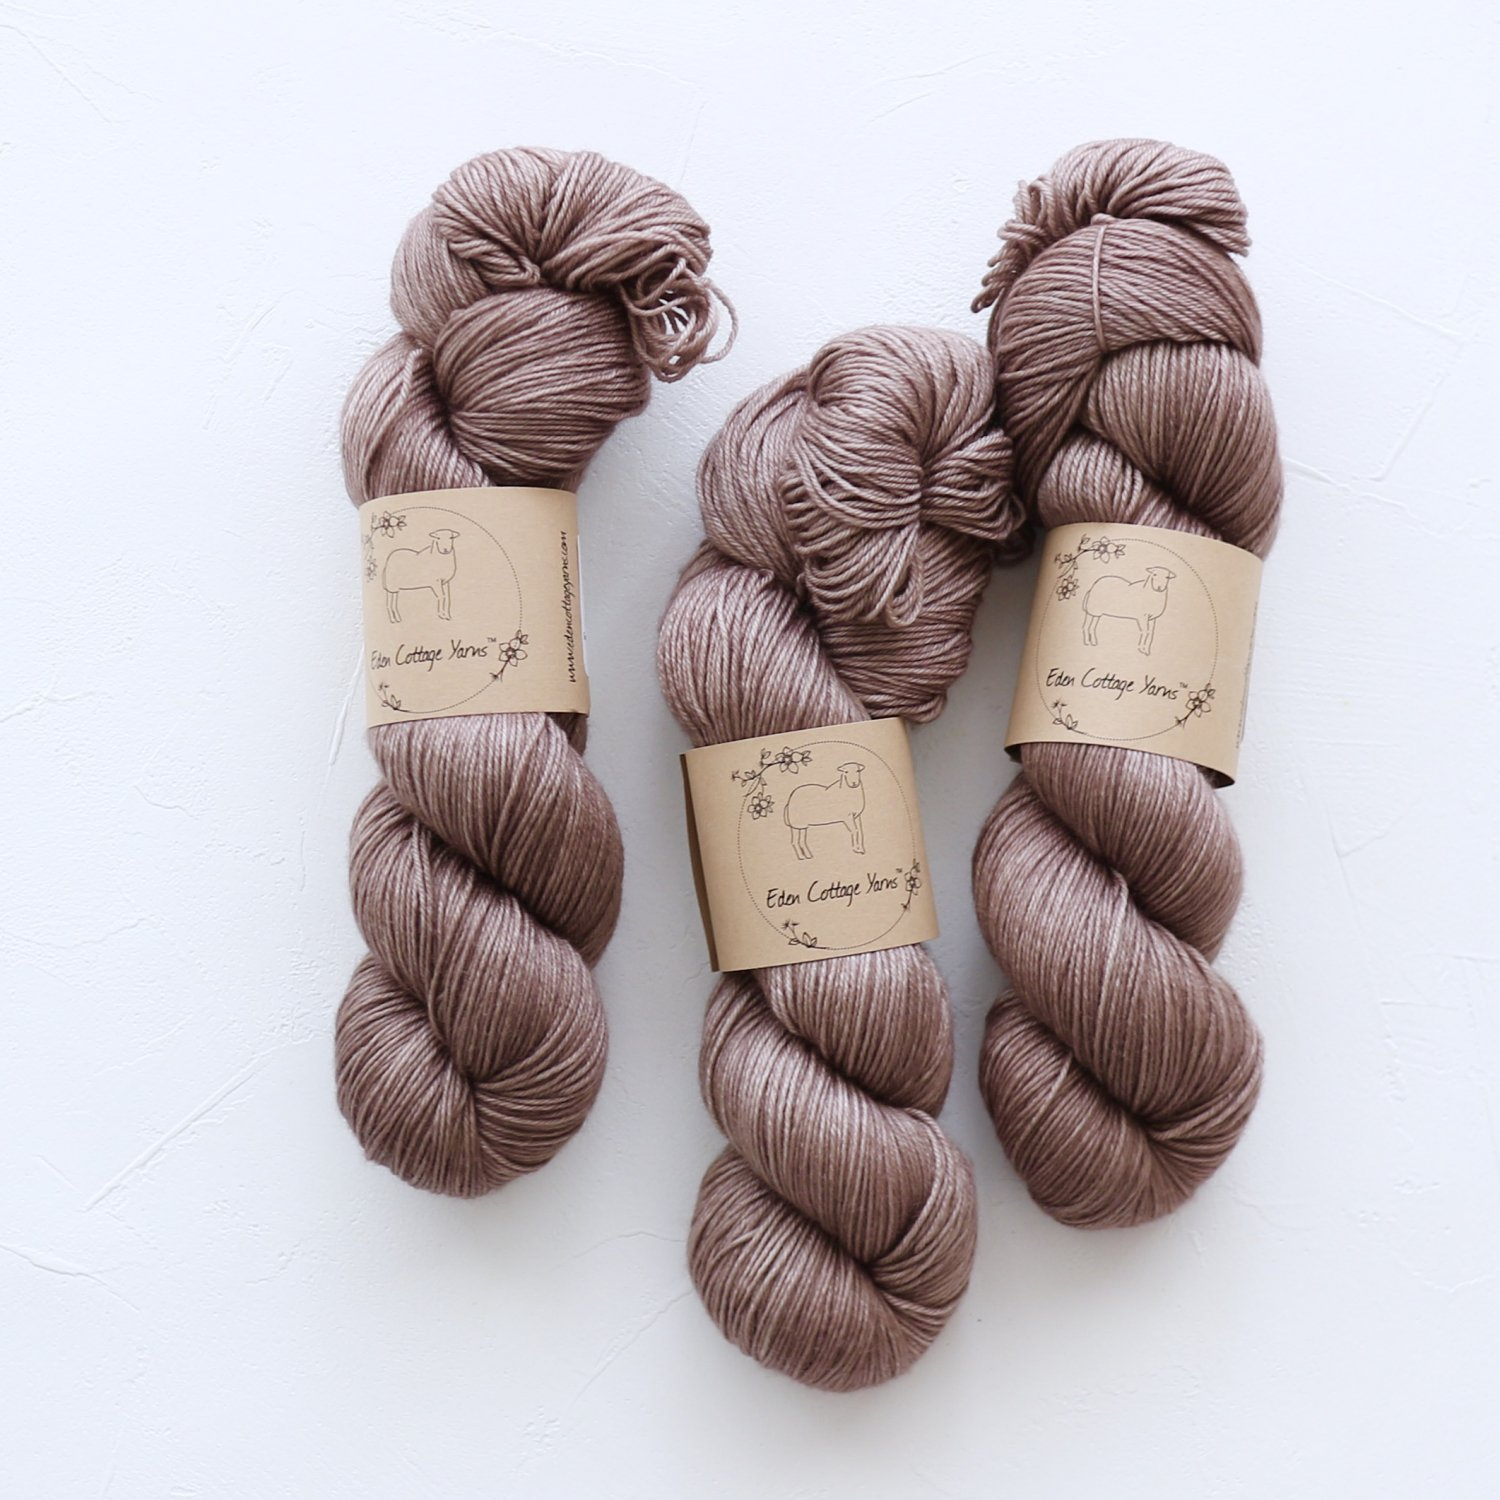 【Eden Cottage Yarns】<br>Pendle 4ply<br>Compost